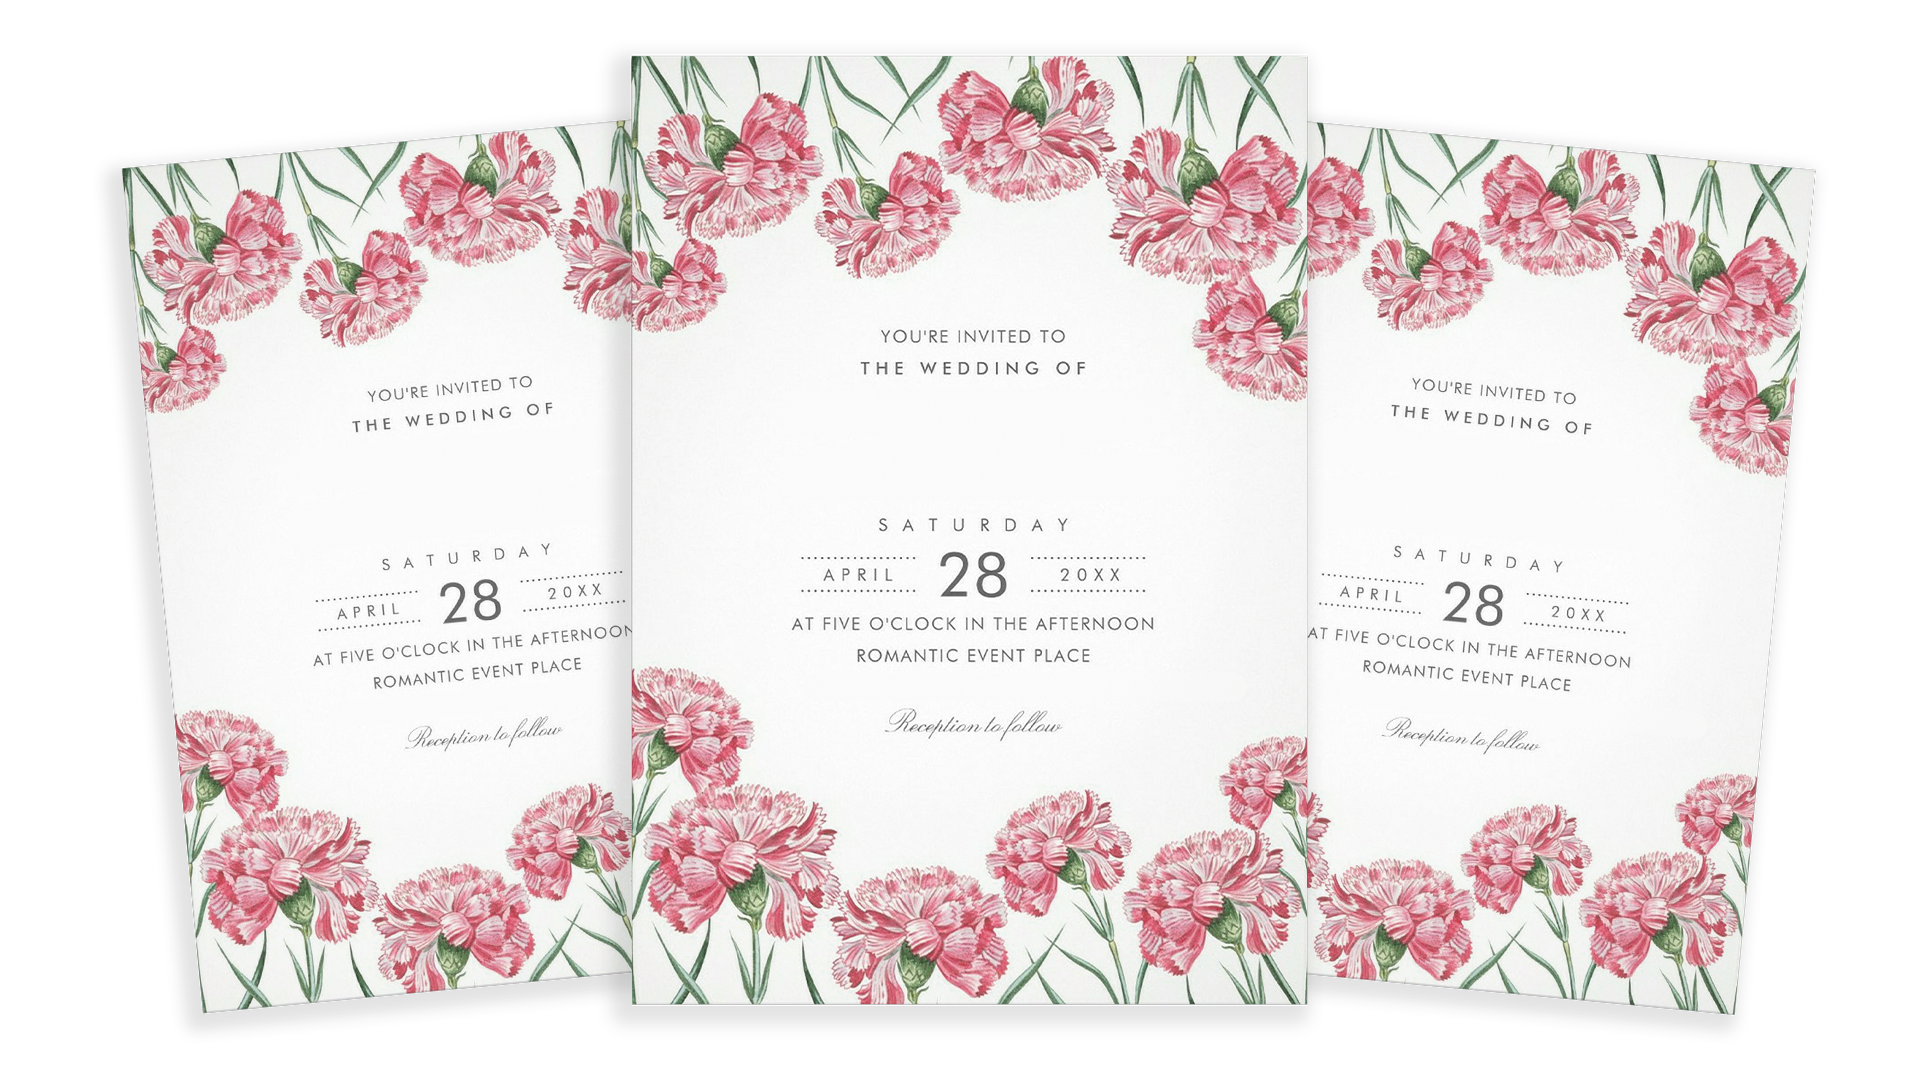 Word Perfect Print | Commercial Printing - Event Invites